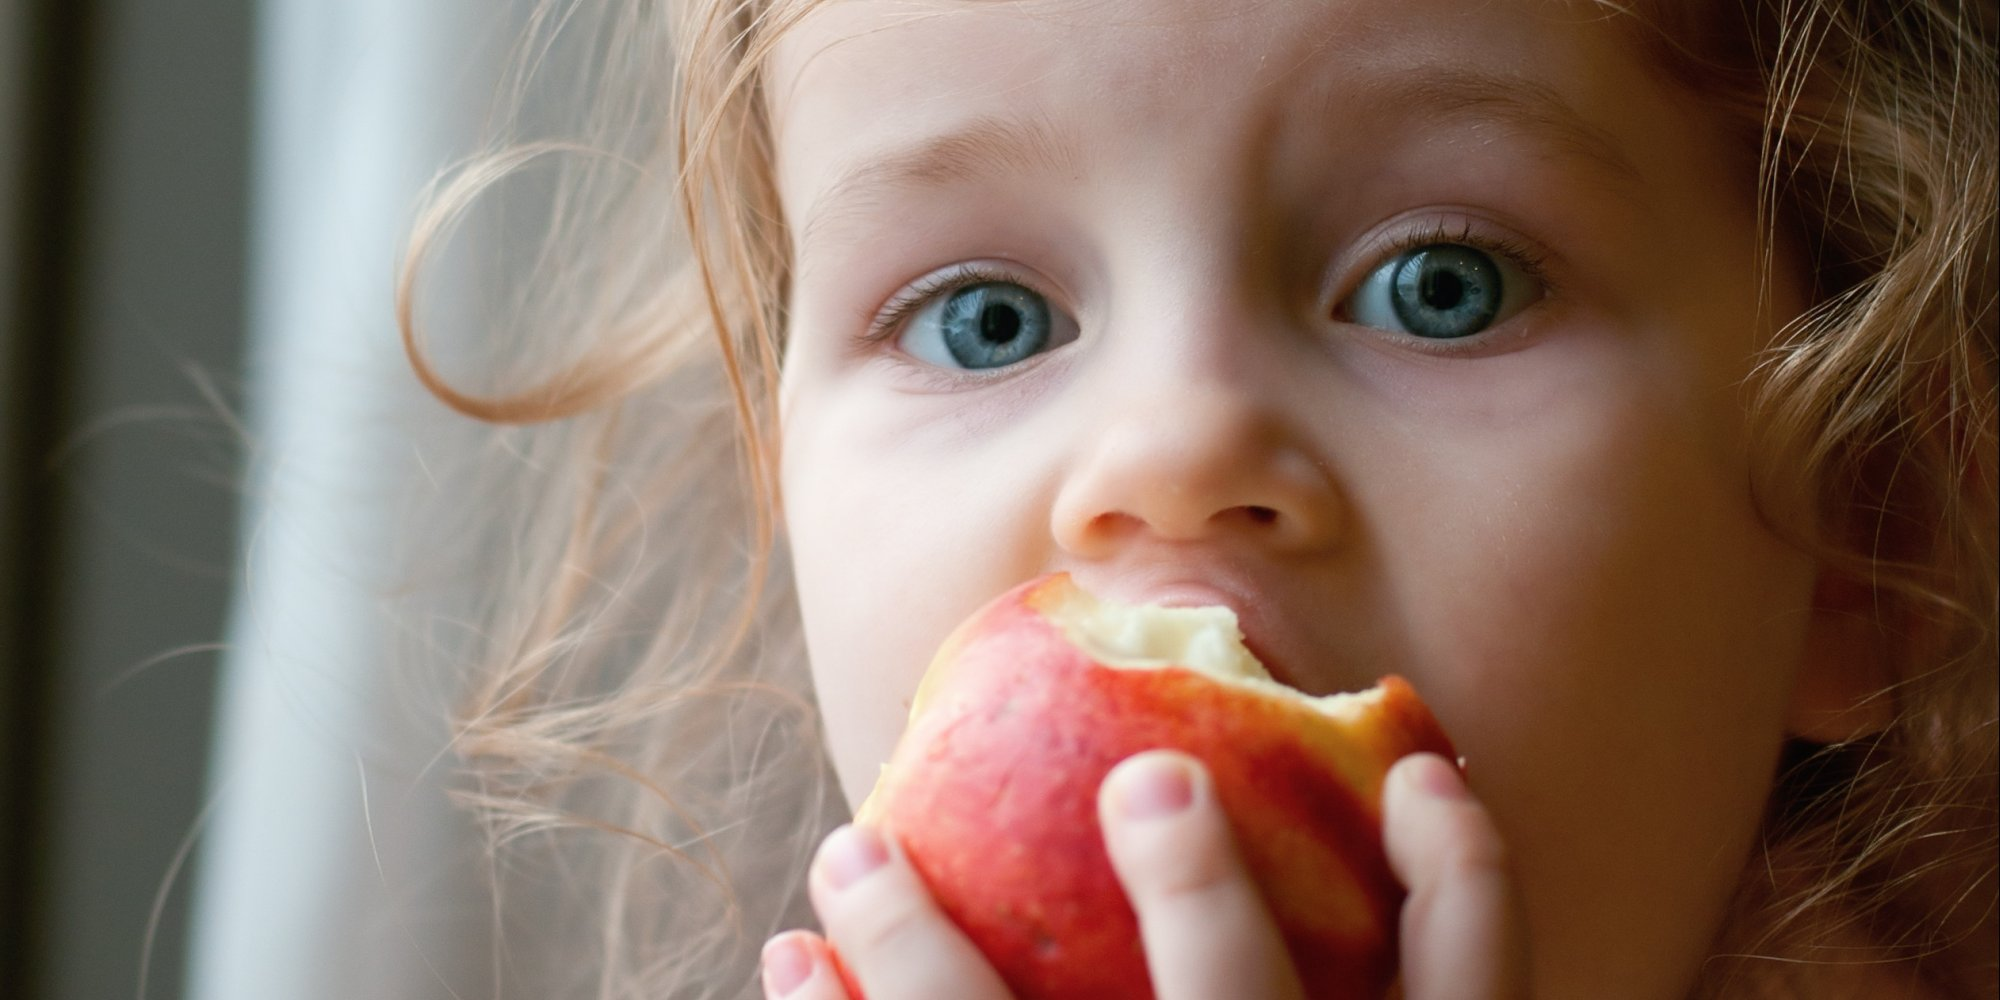 http://www.wbfj.fm/wp-content/uploads/2015/05/KID-EATING-APPLE-facebook.jpg